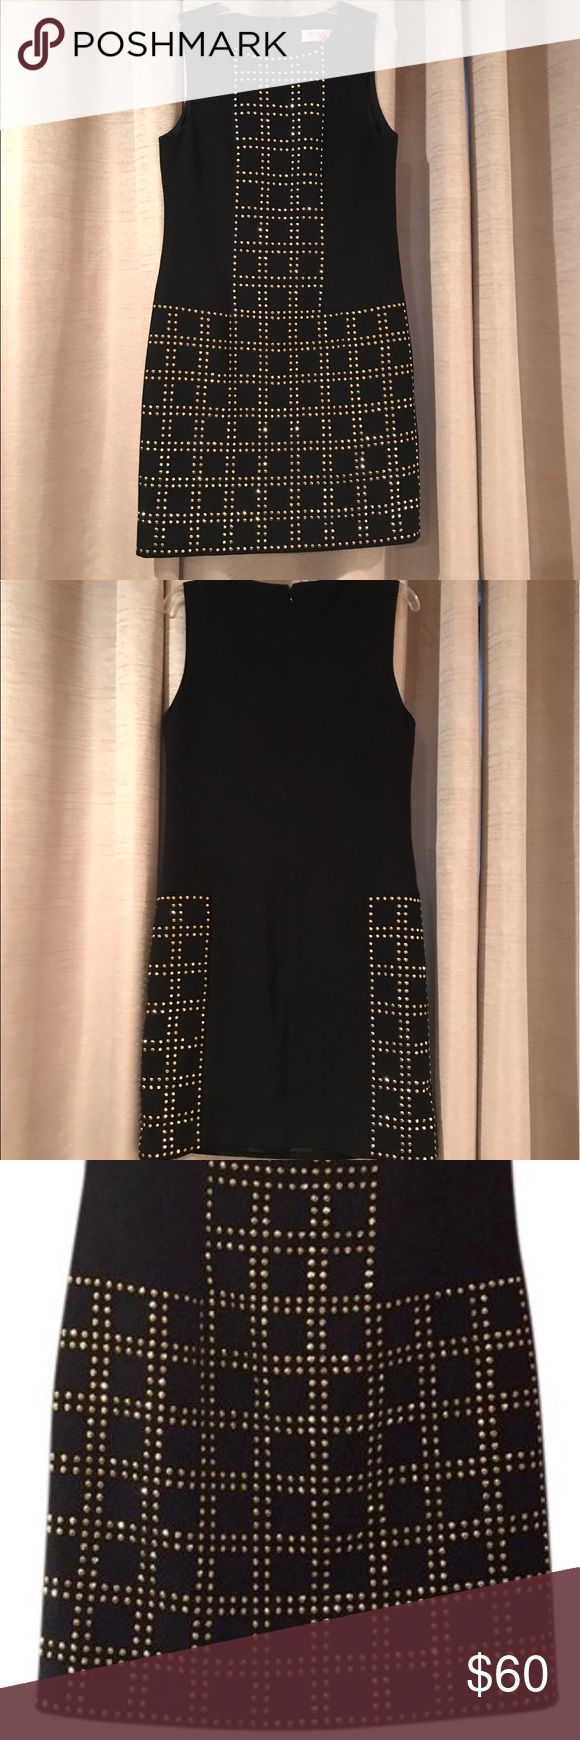 "NEW Trina Turk Dress The perfect little black party dress ! Trina Turk brand new without original tags . Gold stud detail . Zip up back . Length shoulder to bottom 33"" chest 15.25"" flat across. Bottom width 18.5"" flat across Trina Turk Dresses Mini"